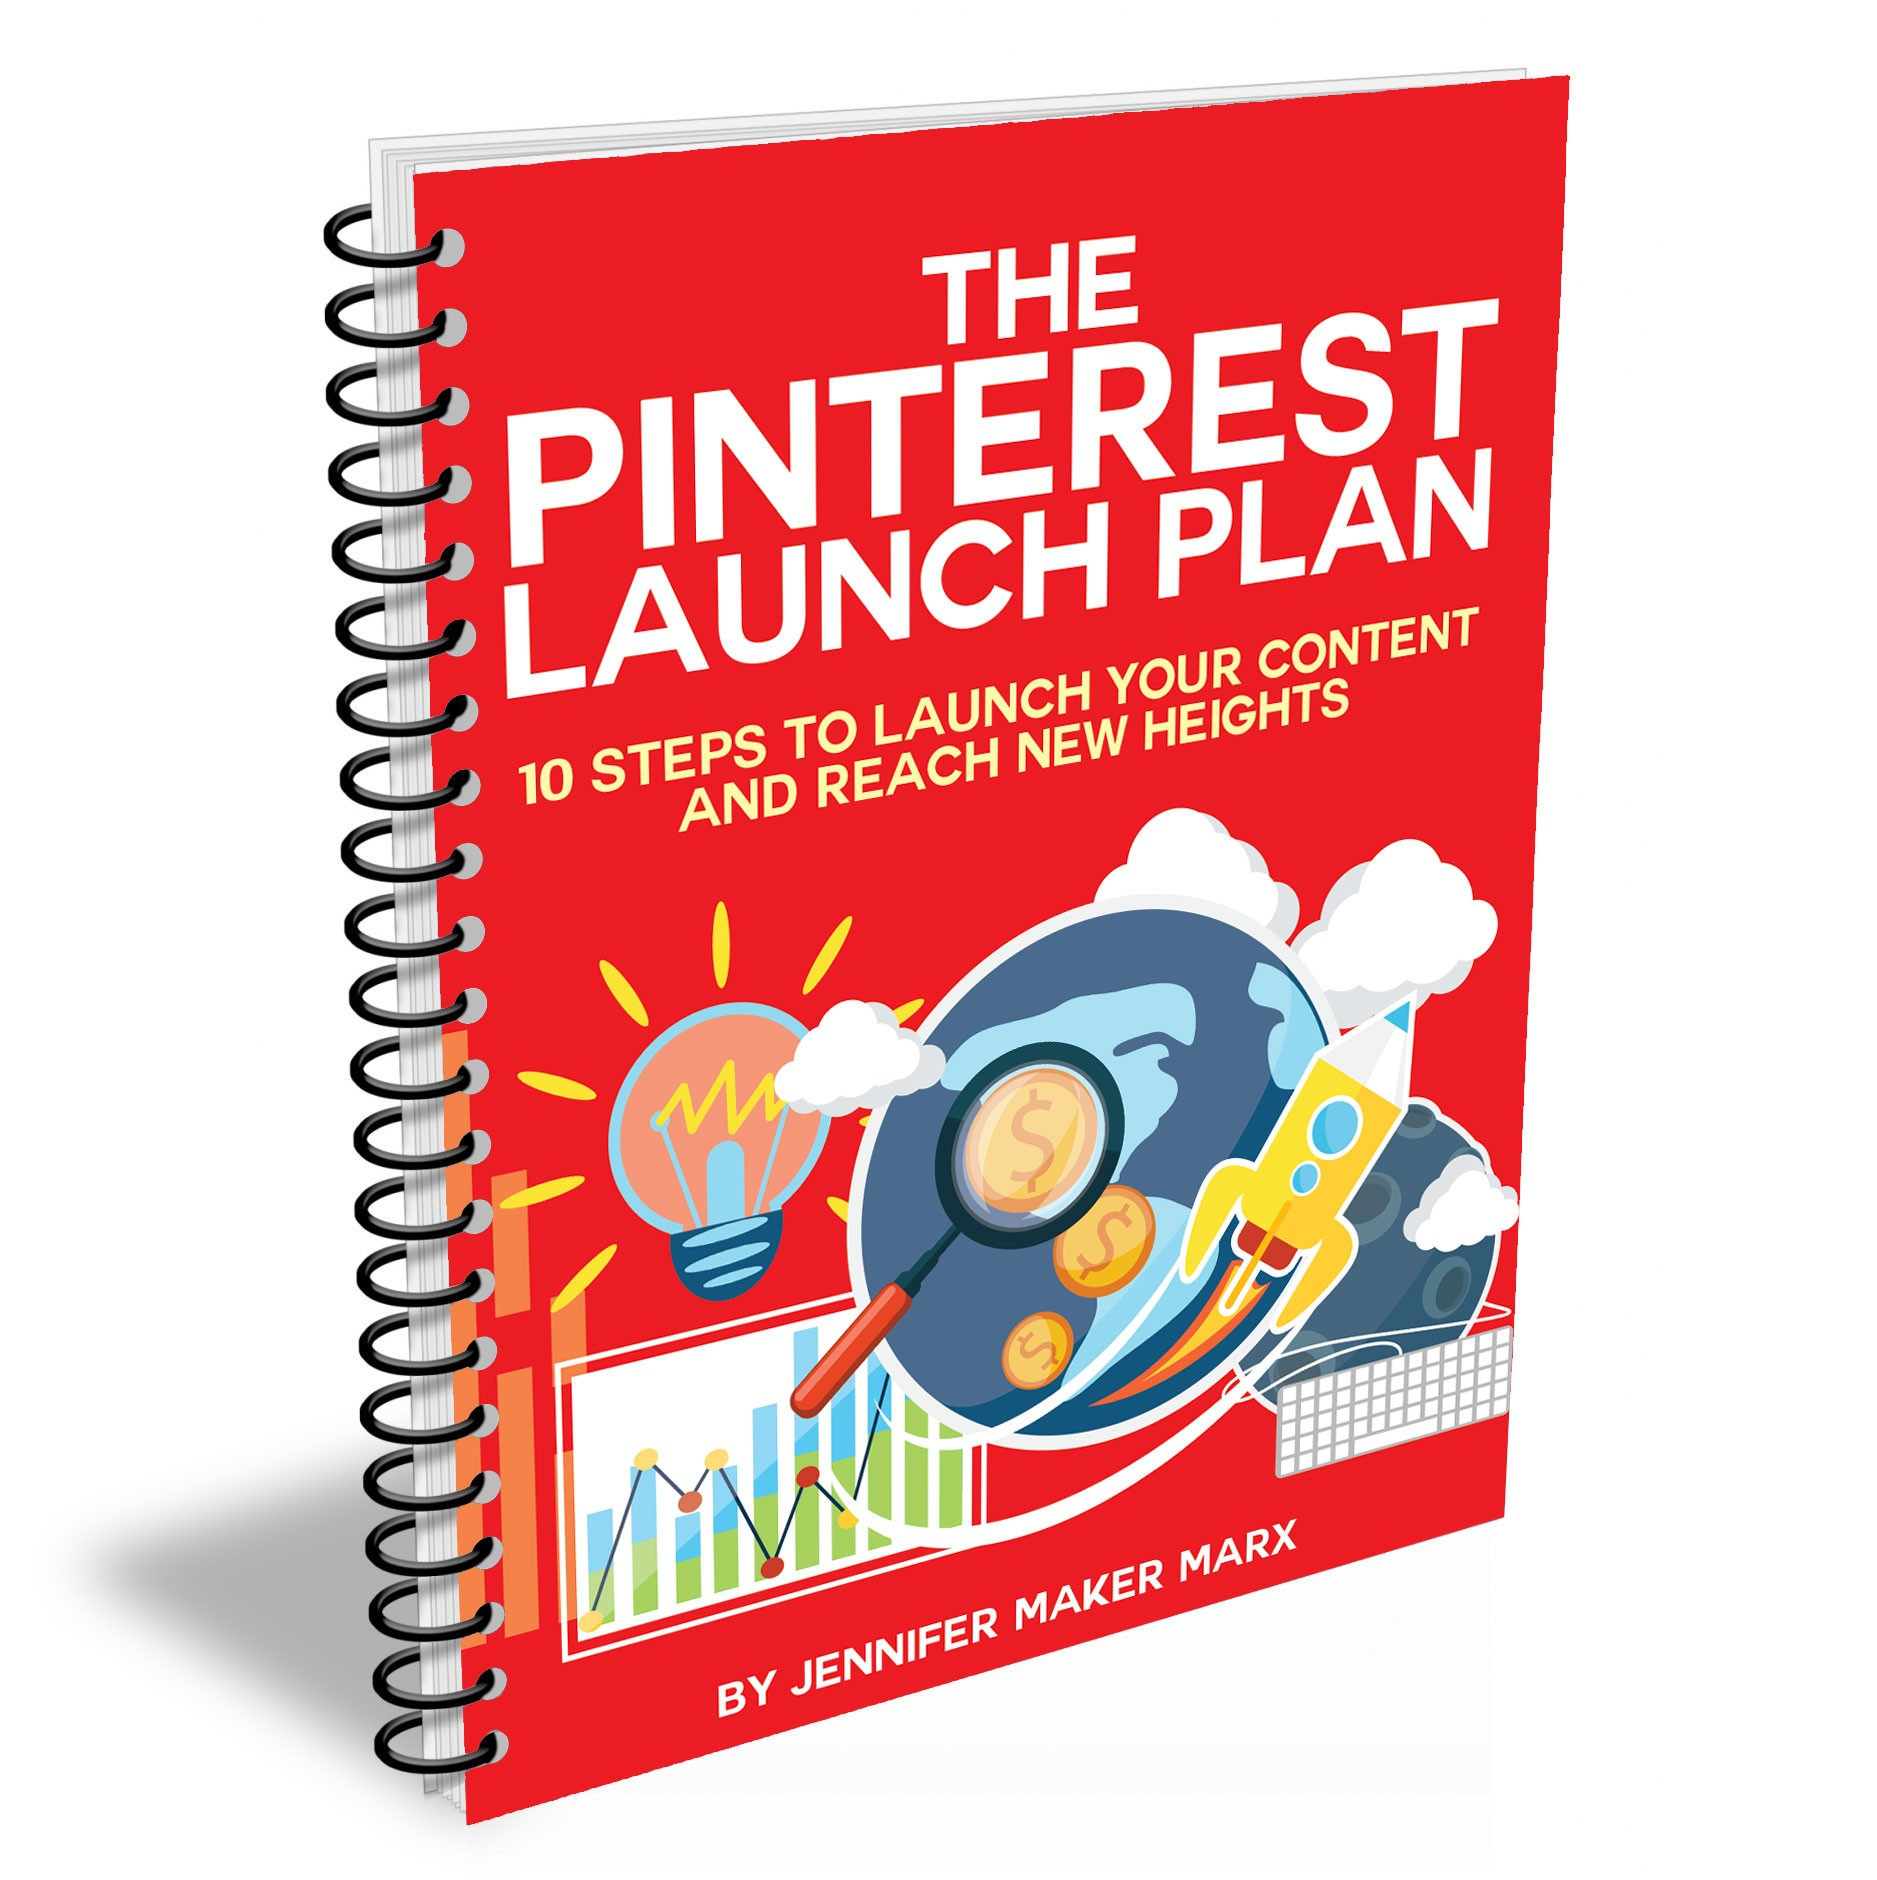 The Pinterest Launch Plan